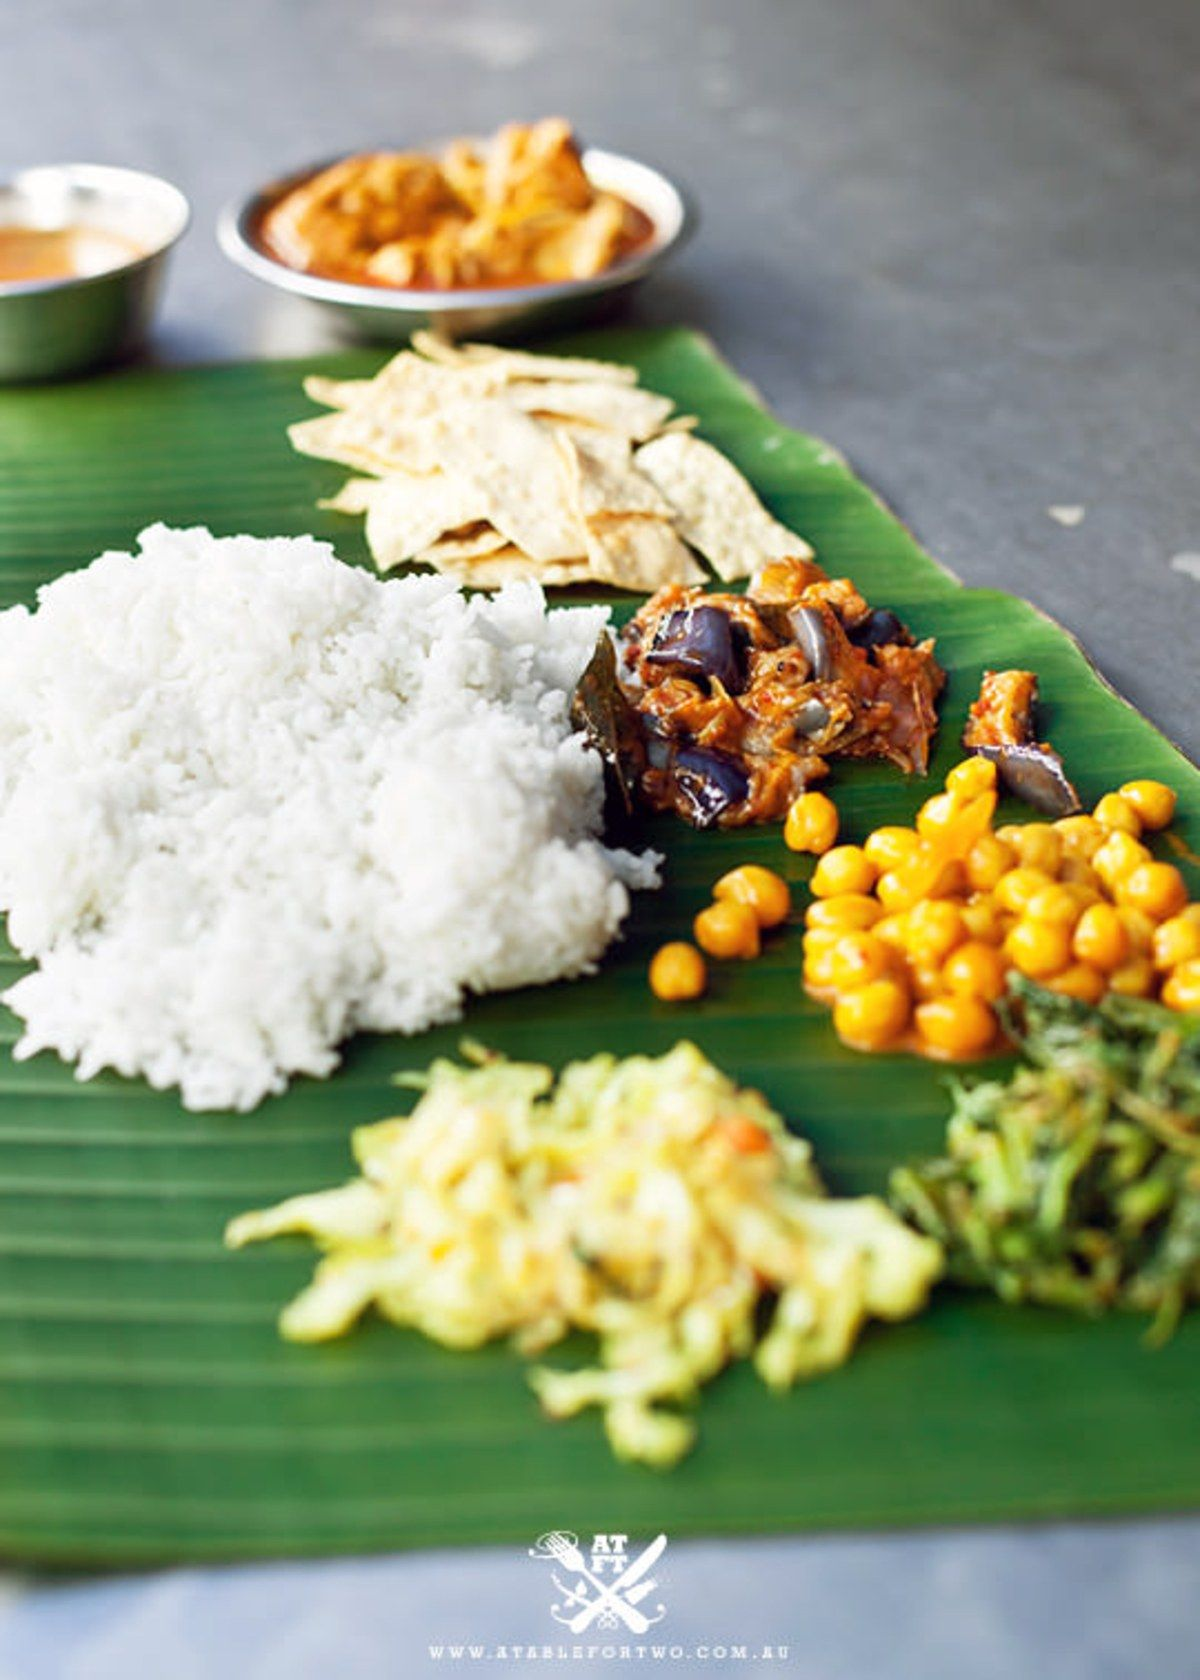 My favourite meal, curry off a banana leaf. Postcard from